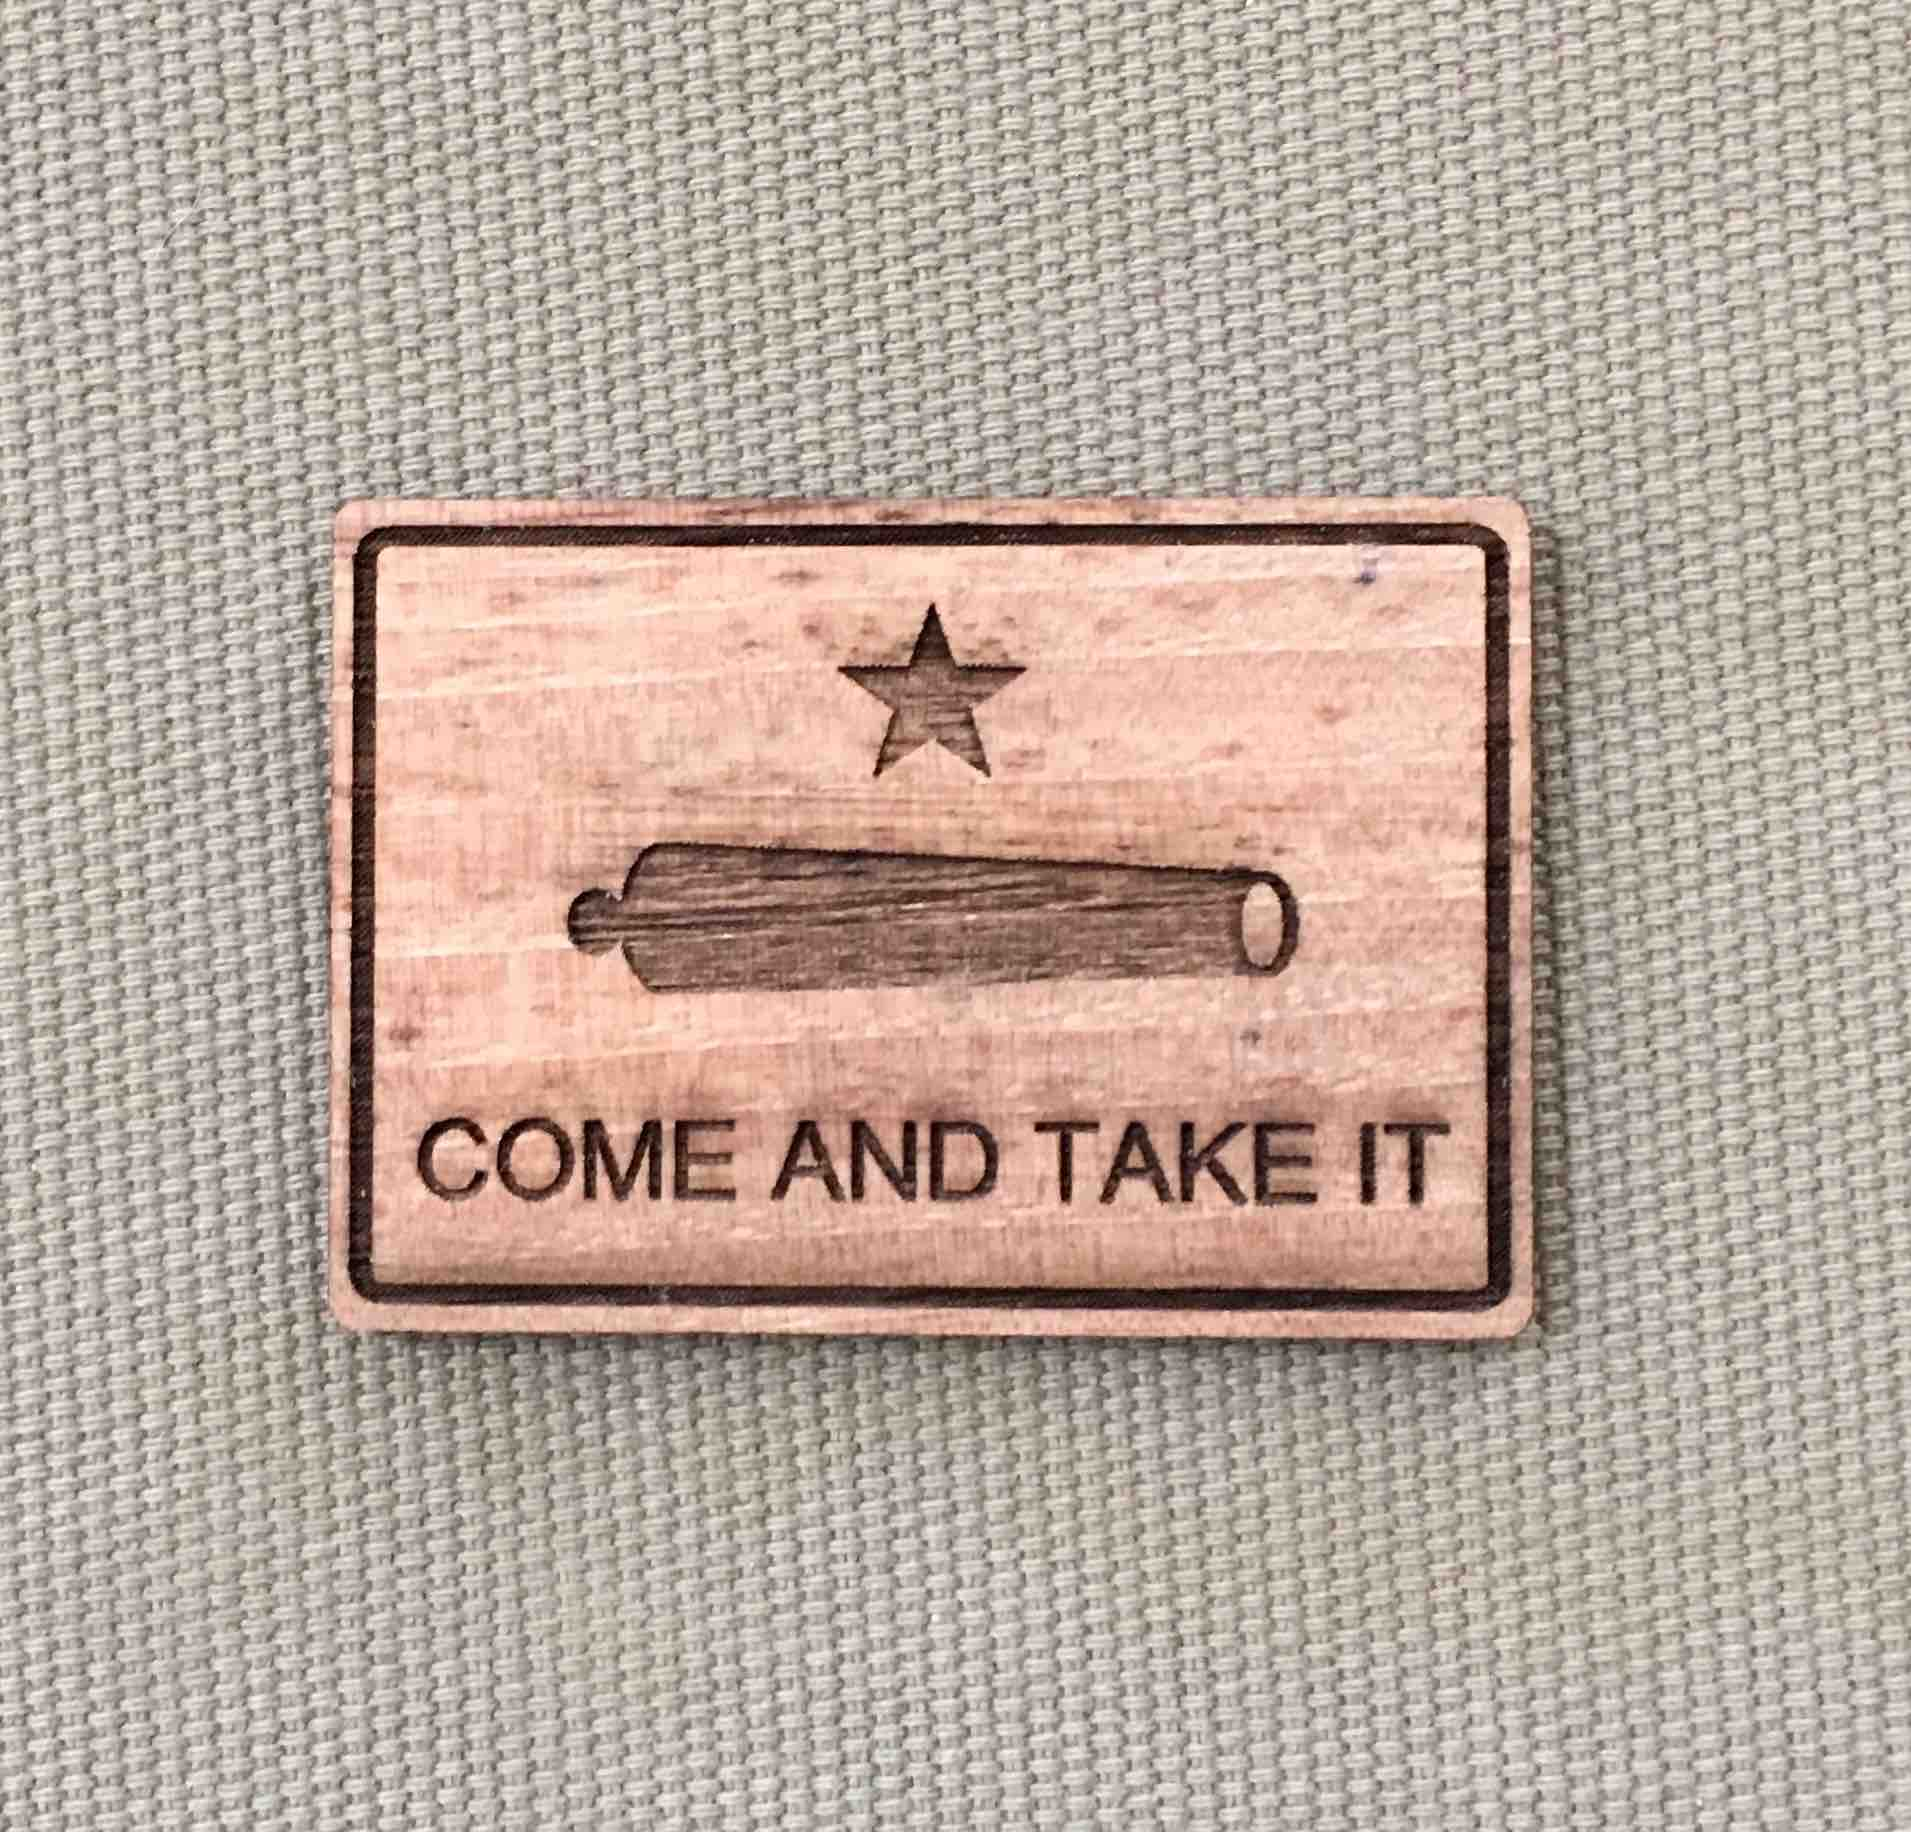 Texas – Come and Take It